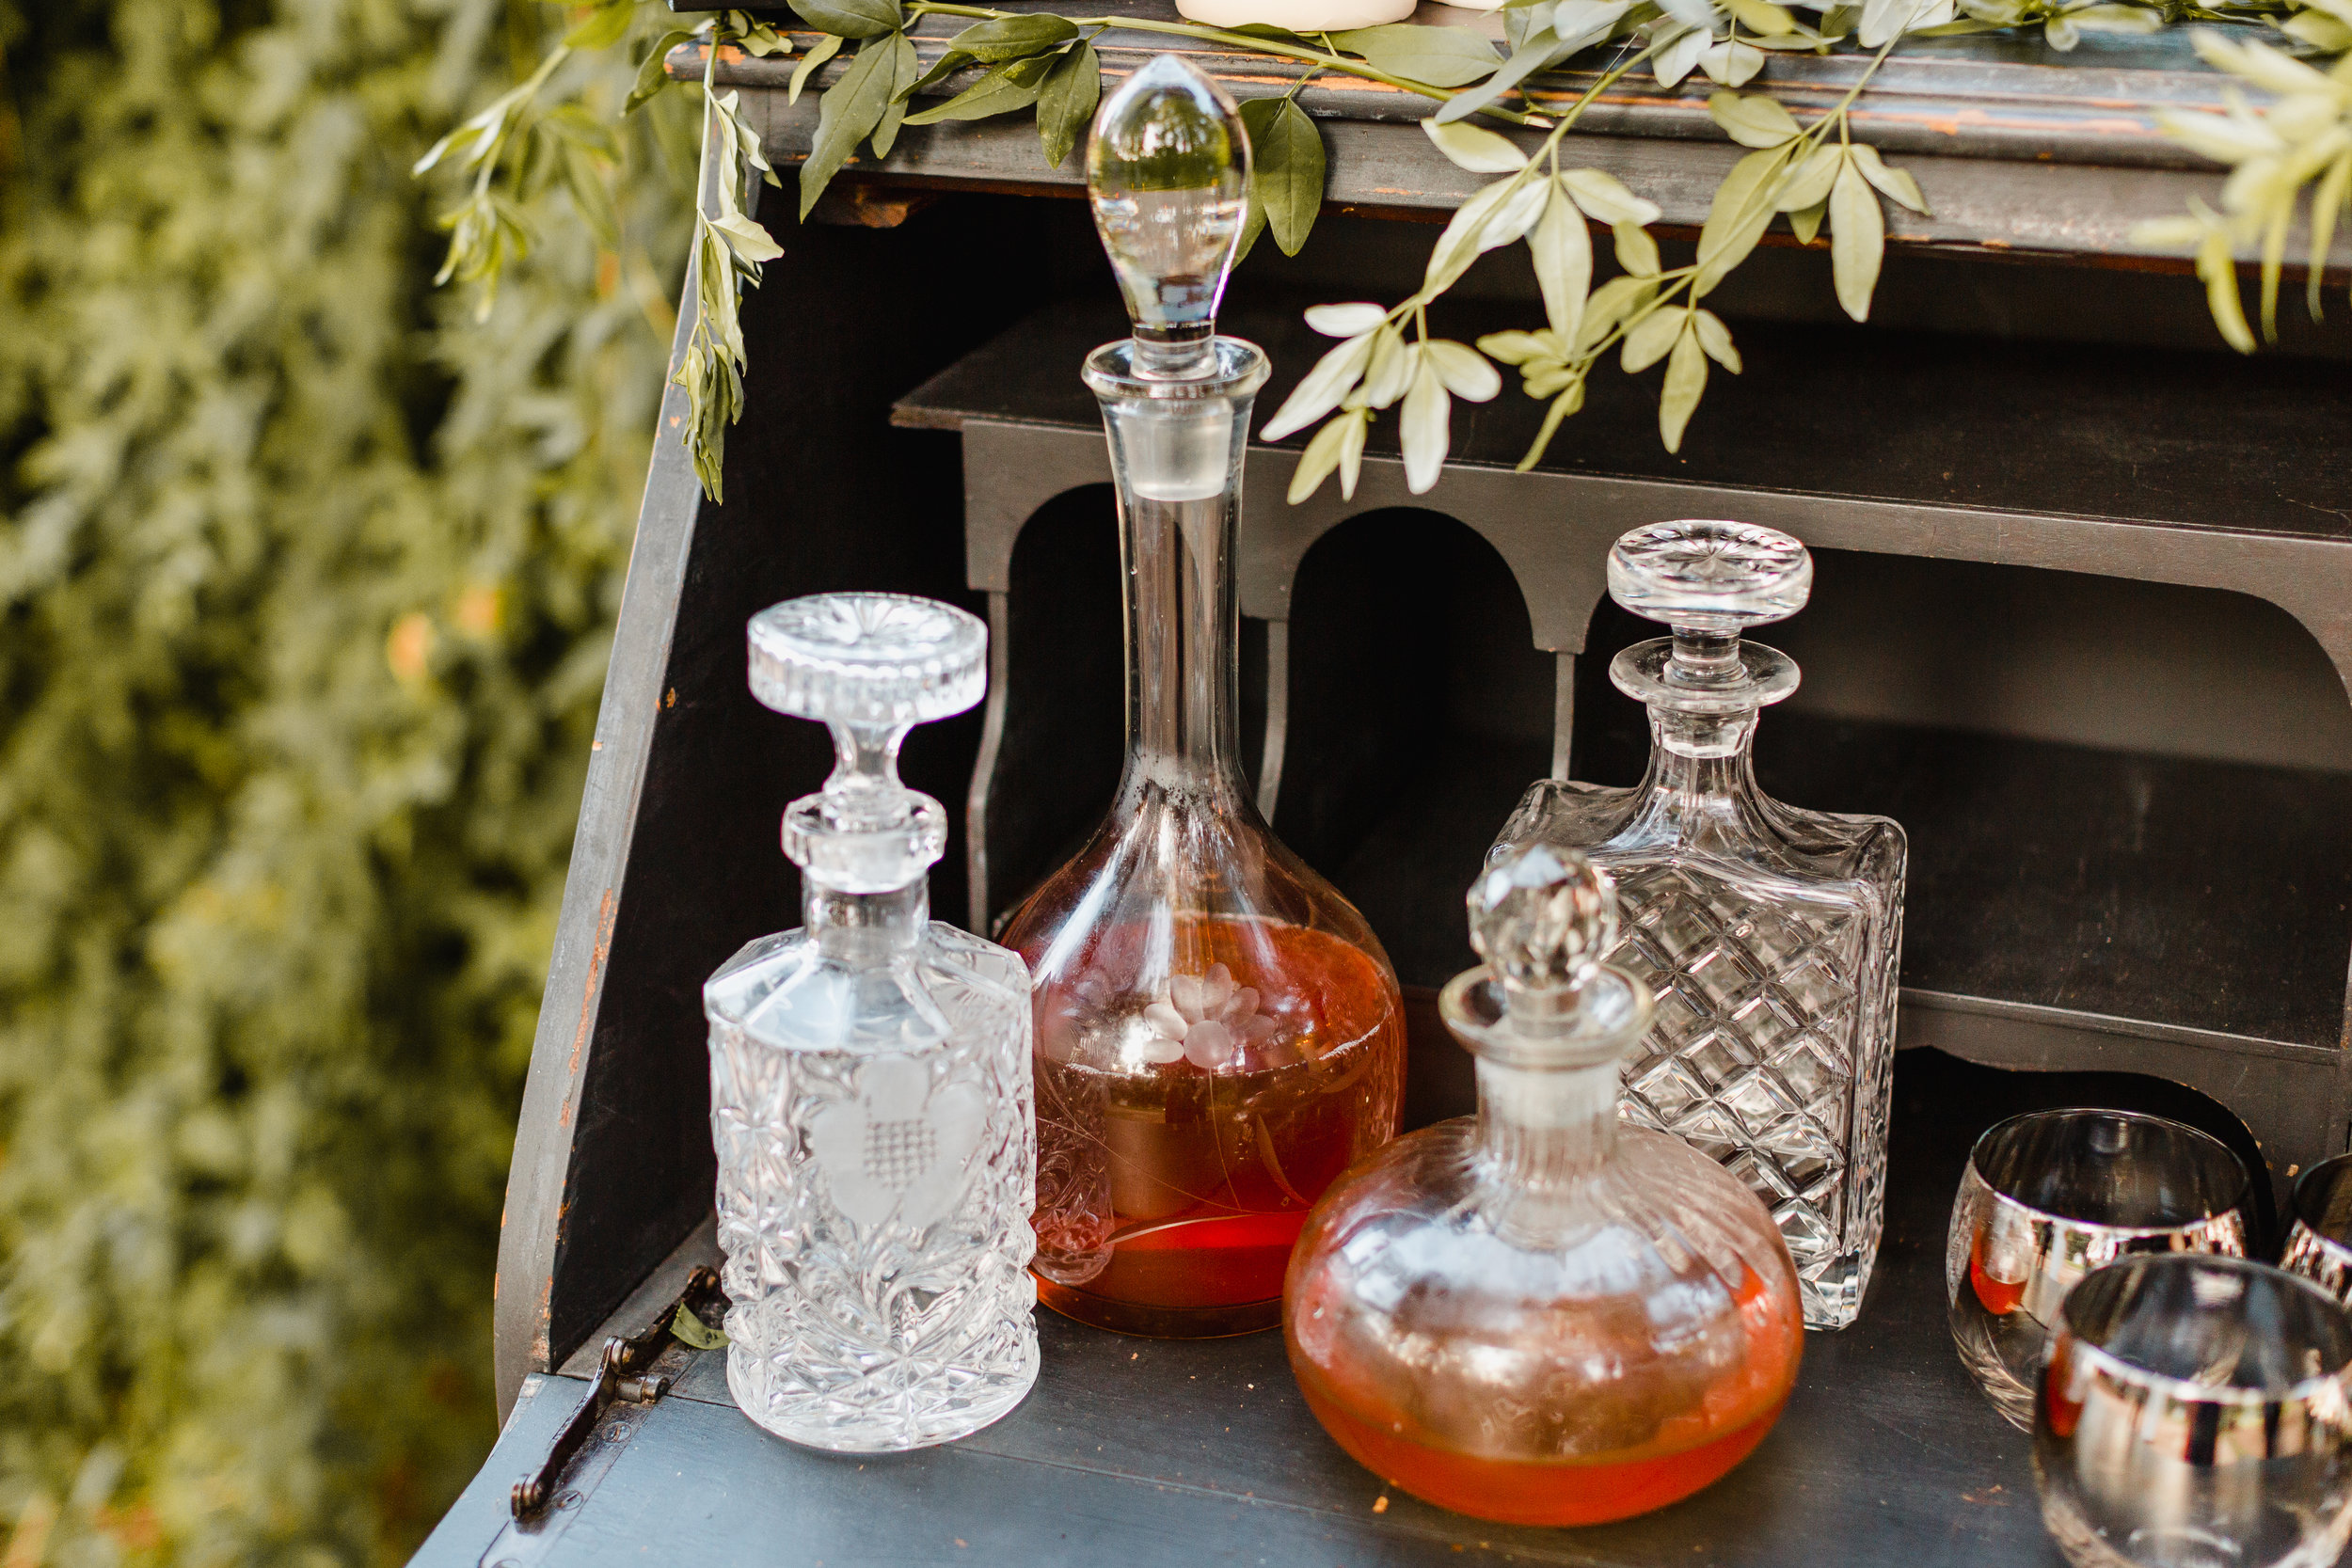 Decanter Set - $40.00 for set of 4